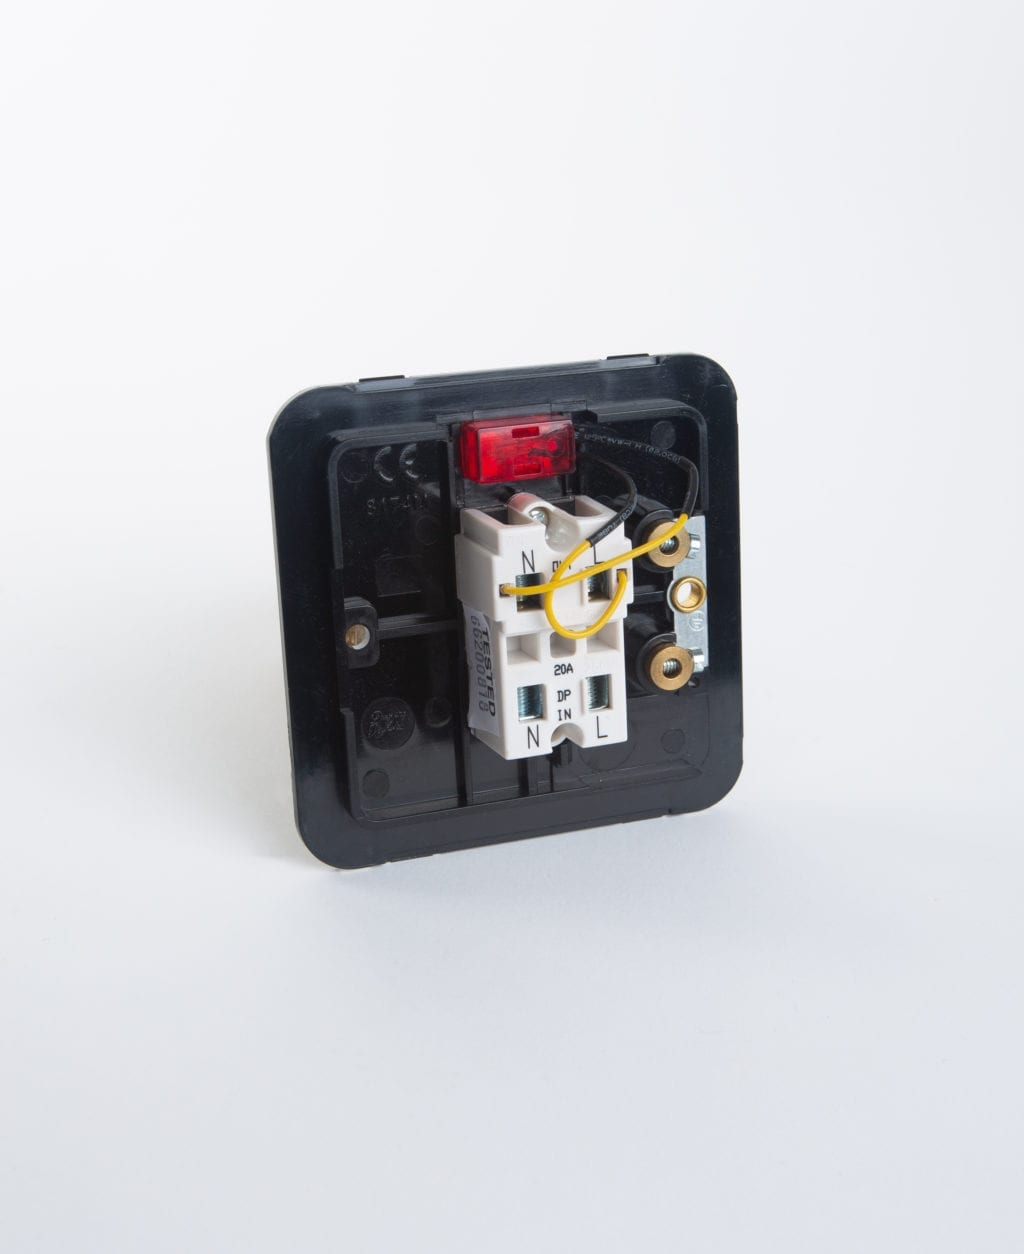 20a double pole switch back plate against white background